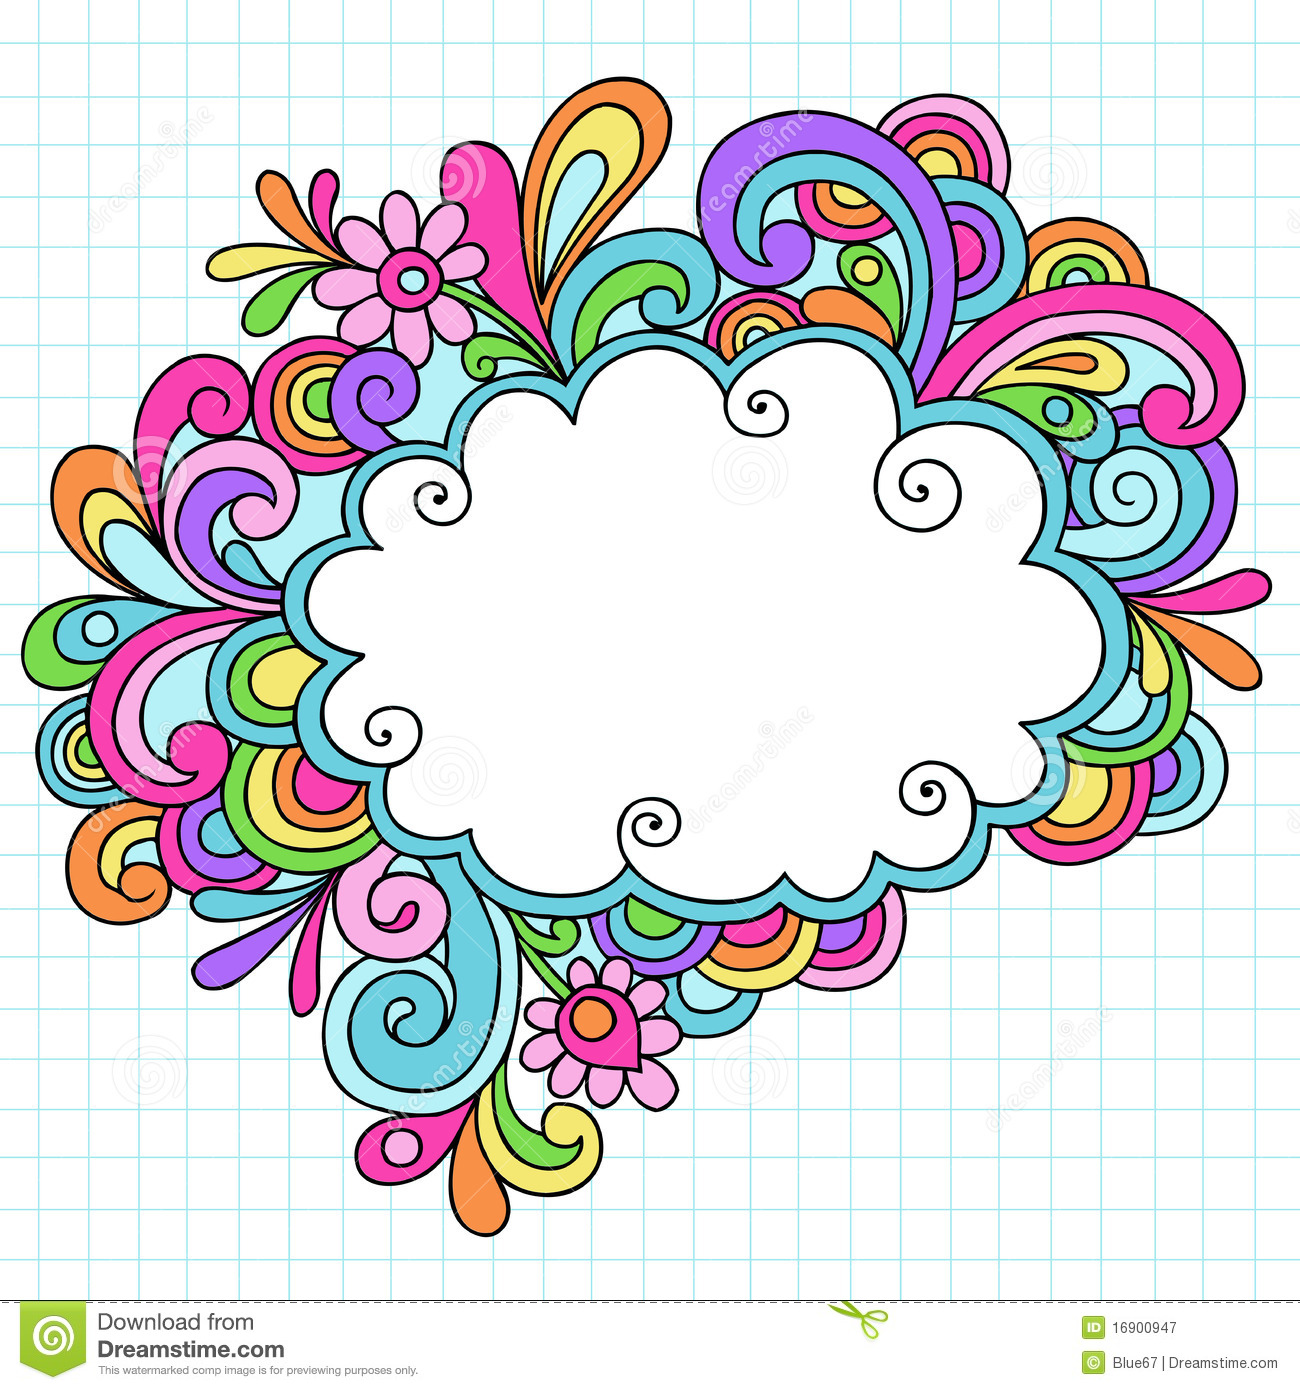 Frame Design Line Art : Hand drawn cloud notebook doodle frame stock vector